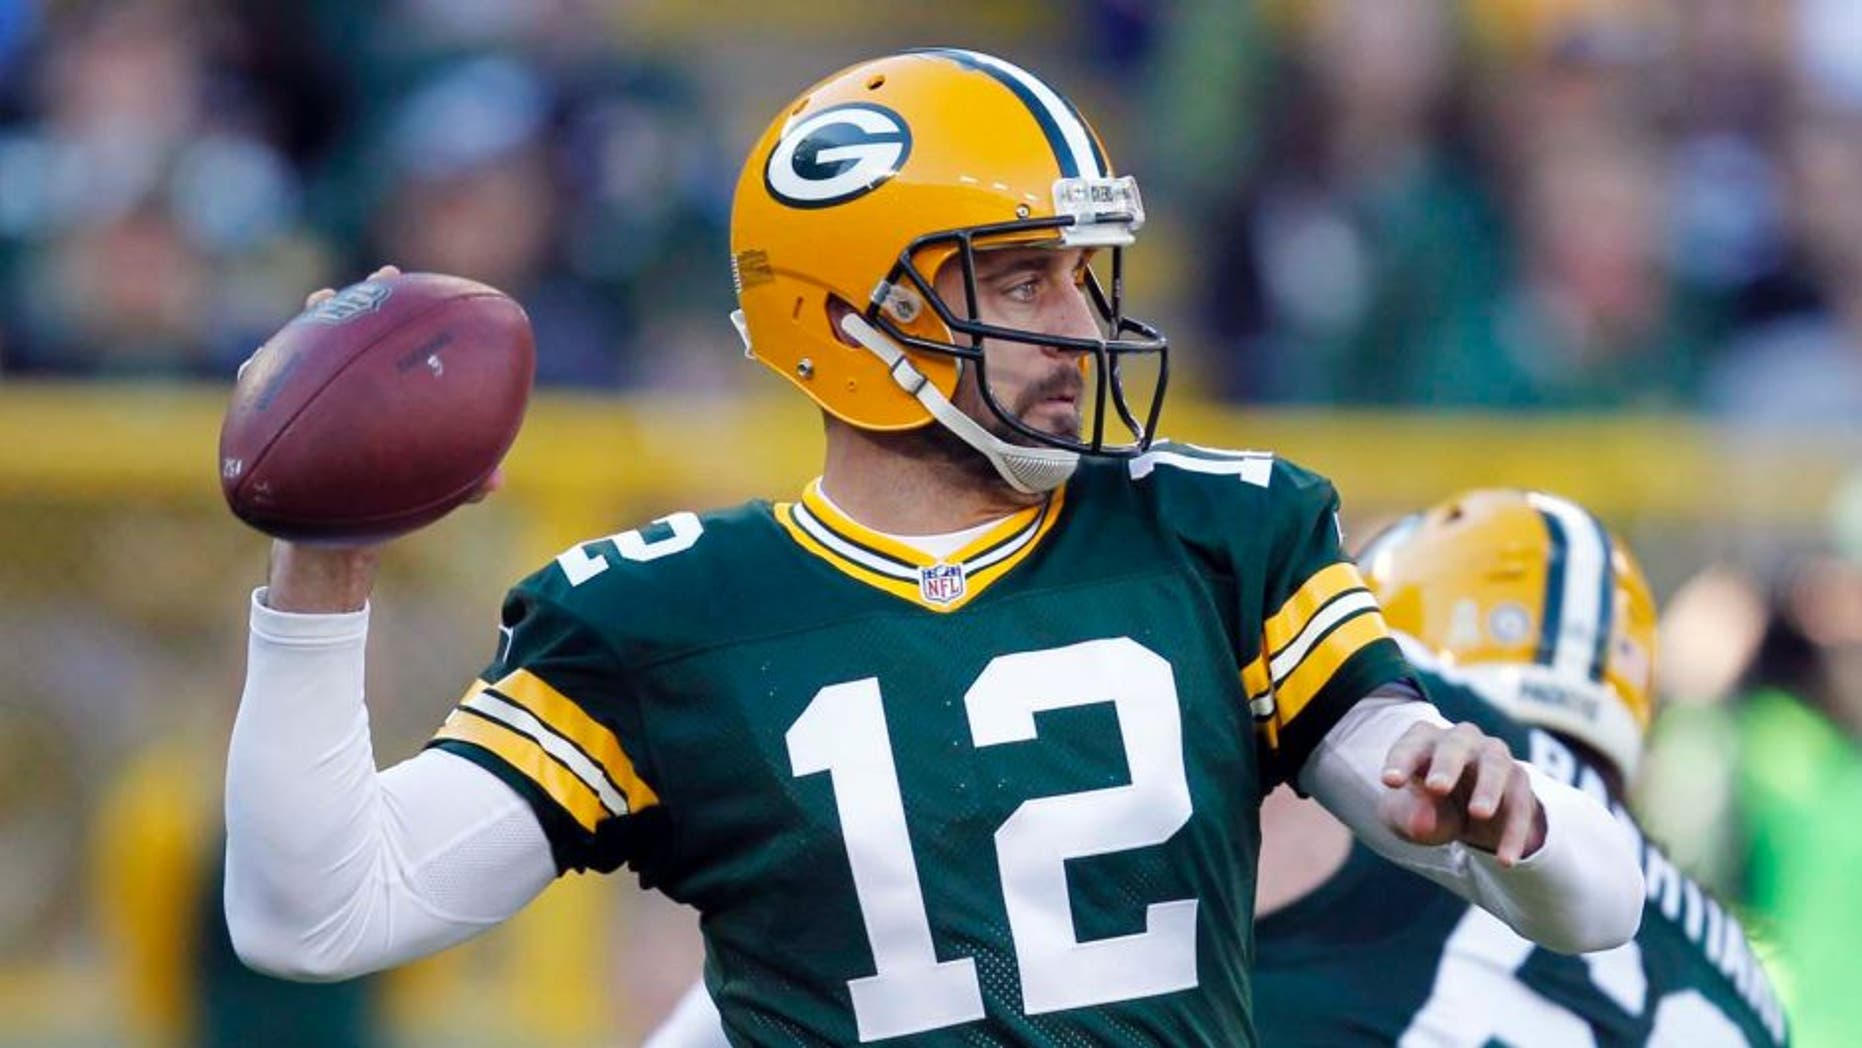 The Green Bay Packers' Aaron Rodgers throws during the first half of an NFL football game against the Detroit Lions on Sunday, Nov. 15, 2015, in Green Bay, Wis.